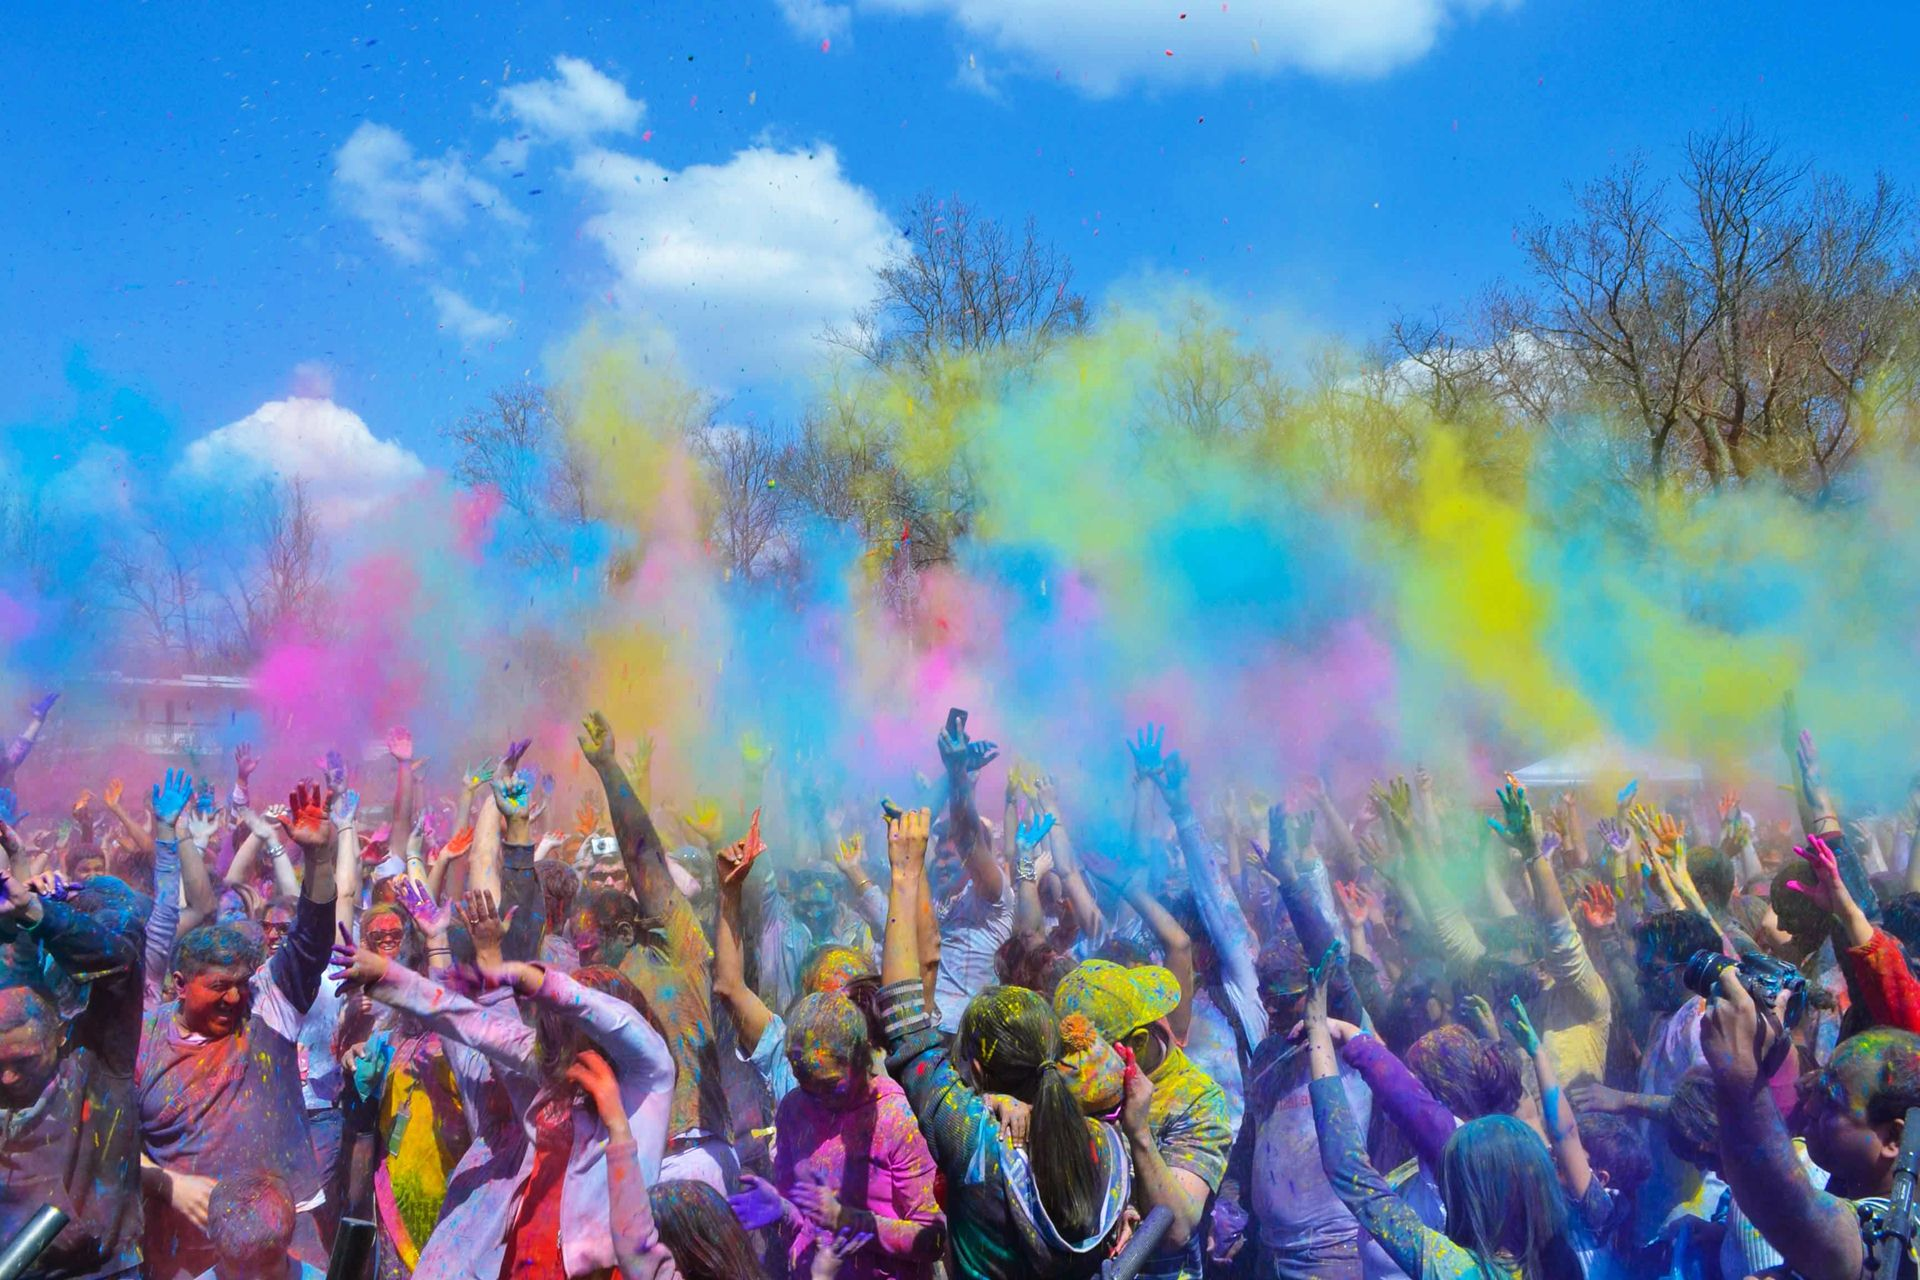 Top Ten Places to Celebrate Holi in India - Thomas Cook India Travel Blog